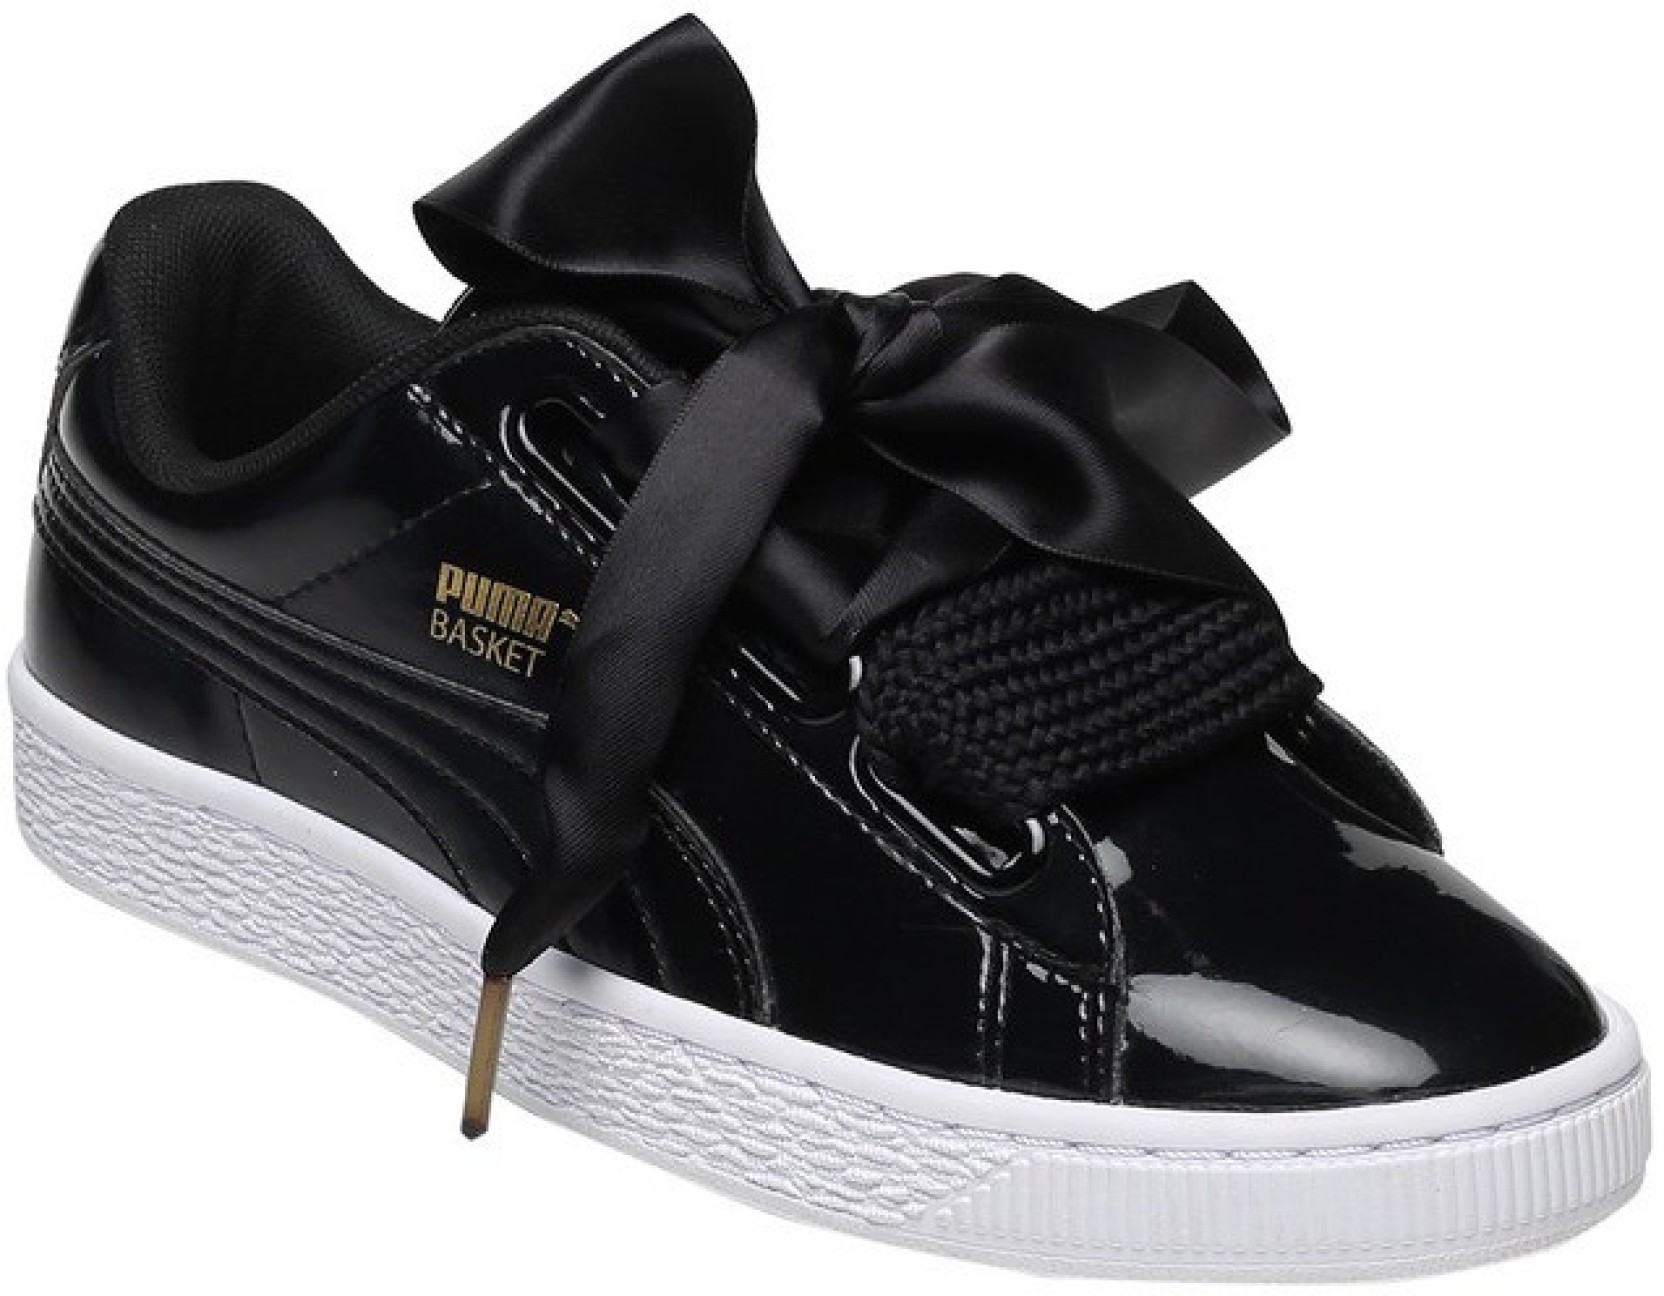 cc2989dda287 Puma Basket Heart Patent Wn s Sneakers For Women - Buy Puma Black ...